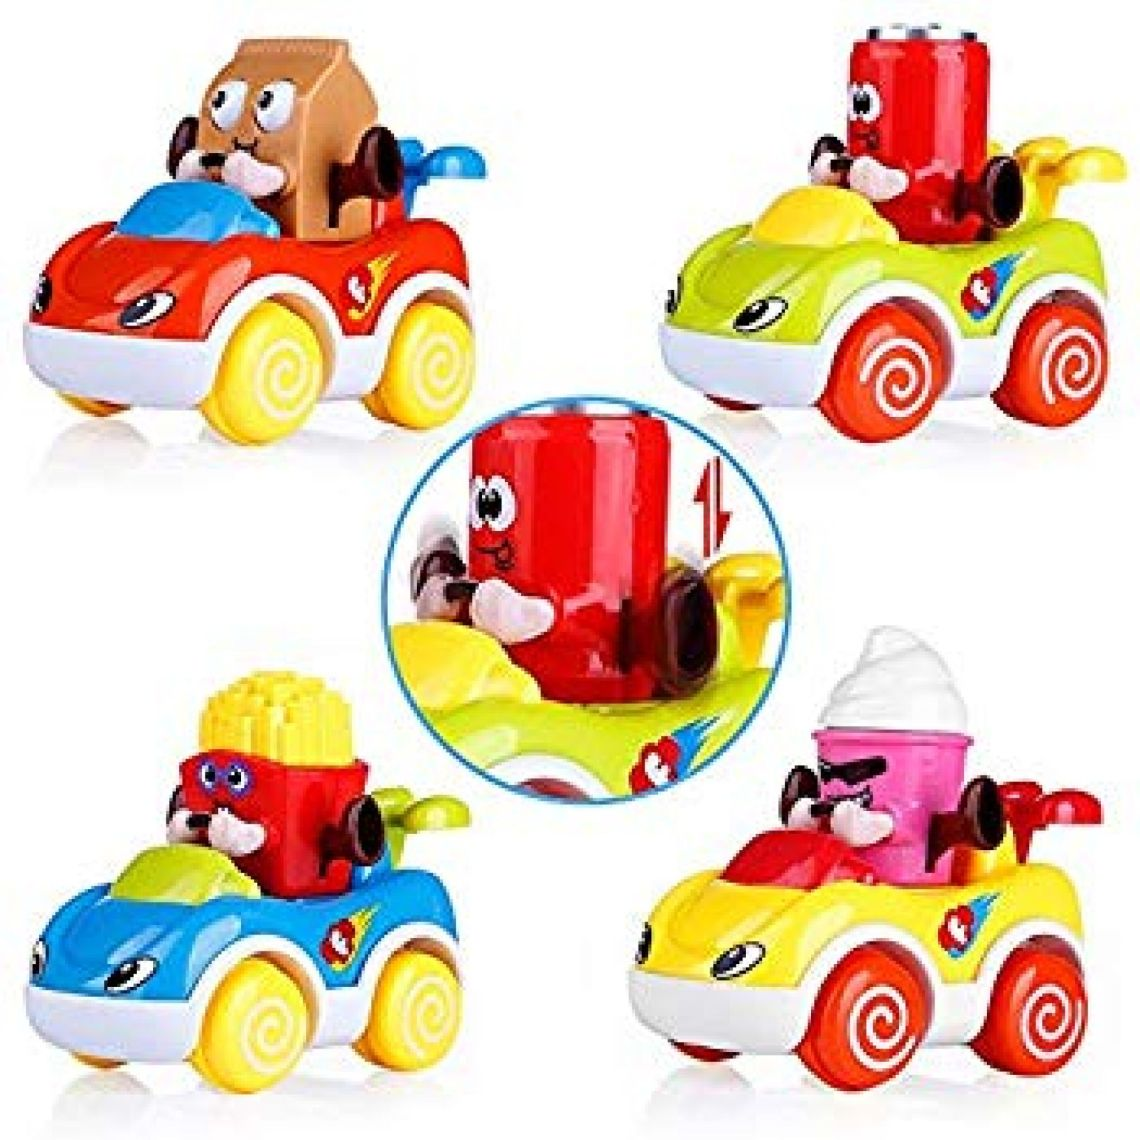 Amazon.com: VATOS Friction Powered Push and Go Cartoon Car Toys Play Set, Toddler Toys Car Set of 4, Early Educational Toys Best Gifts for 1, 2 Years Old Boys and Girls: Toys & Games